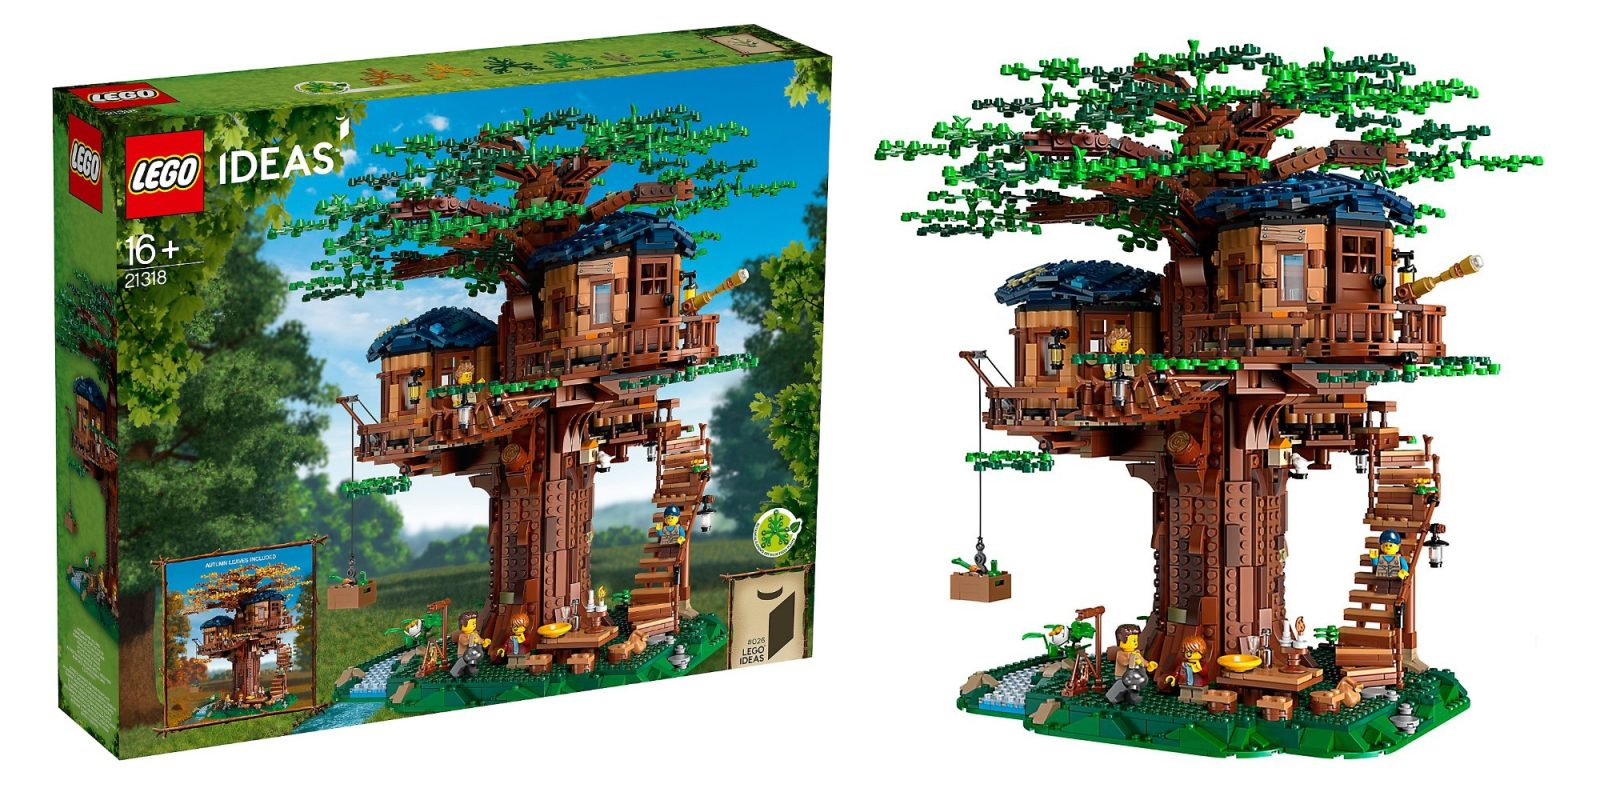 LEGO Ideas Treehouse is the largest offical fan-made kit so